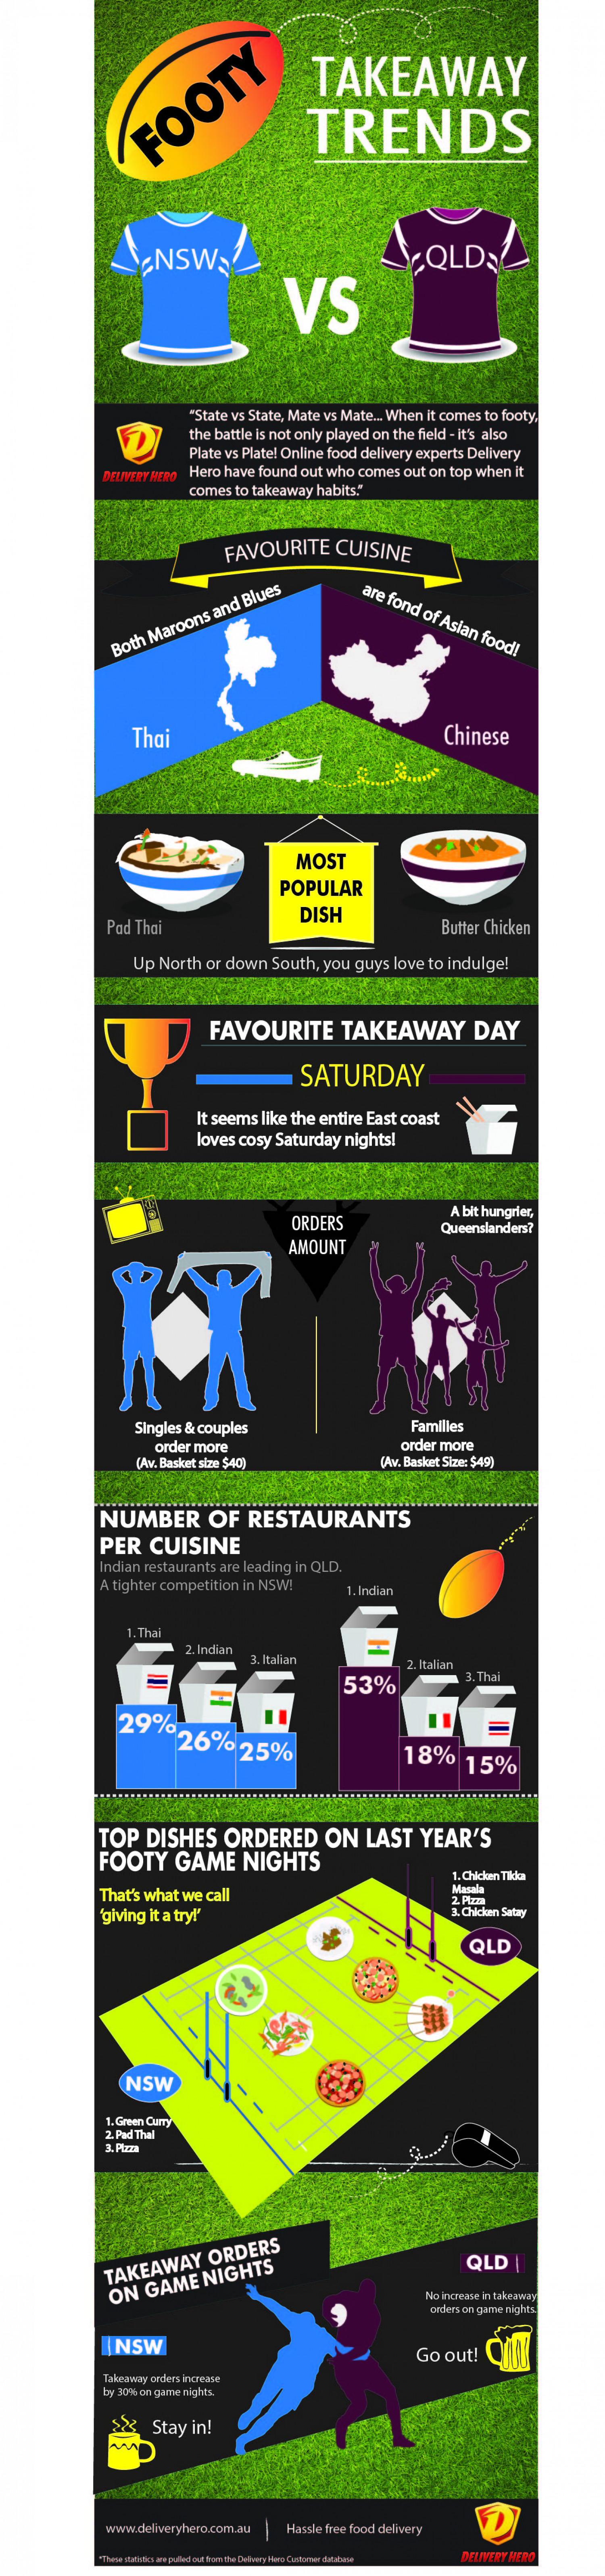 Footy Takeaway Trends | Delivery Hero Australia Infographic